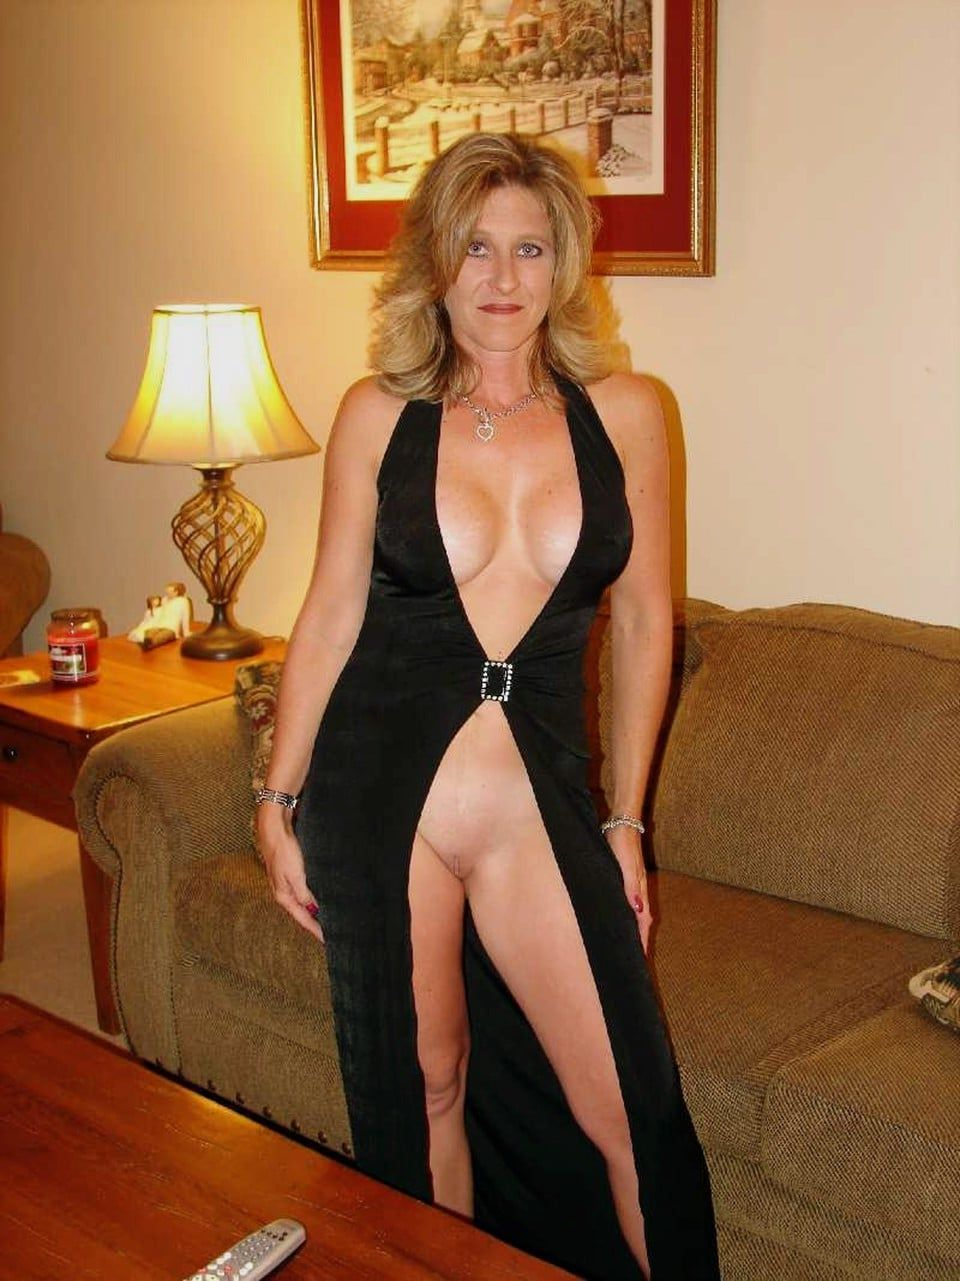 Milf slut movies